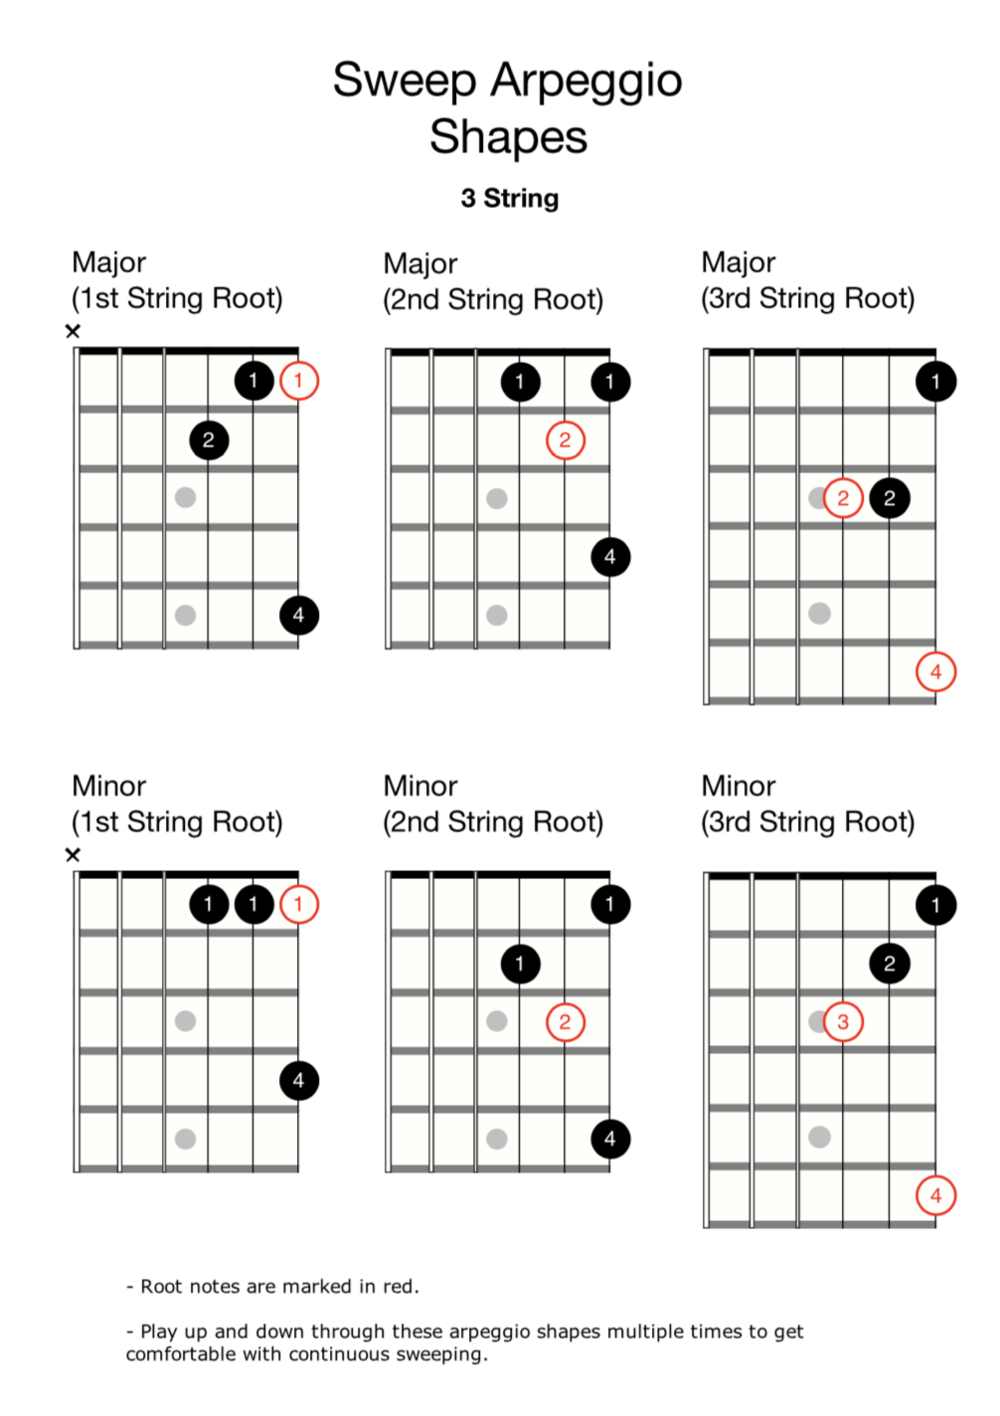 Sweep Arpeggio Shapes (3 String)